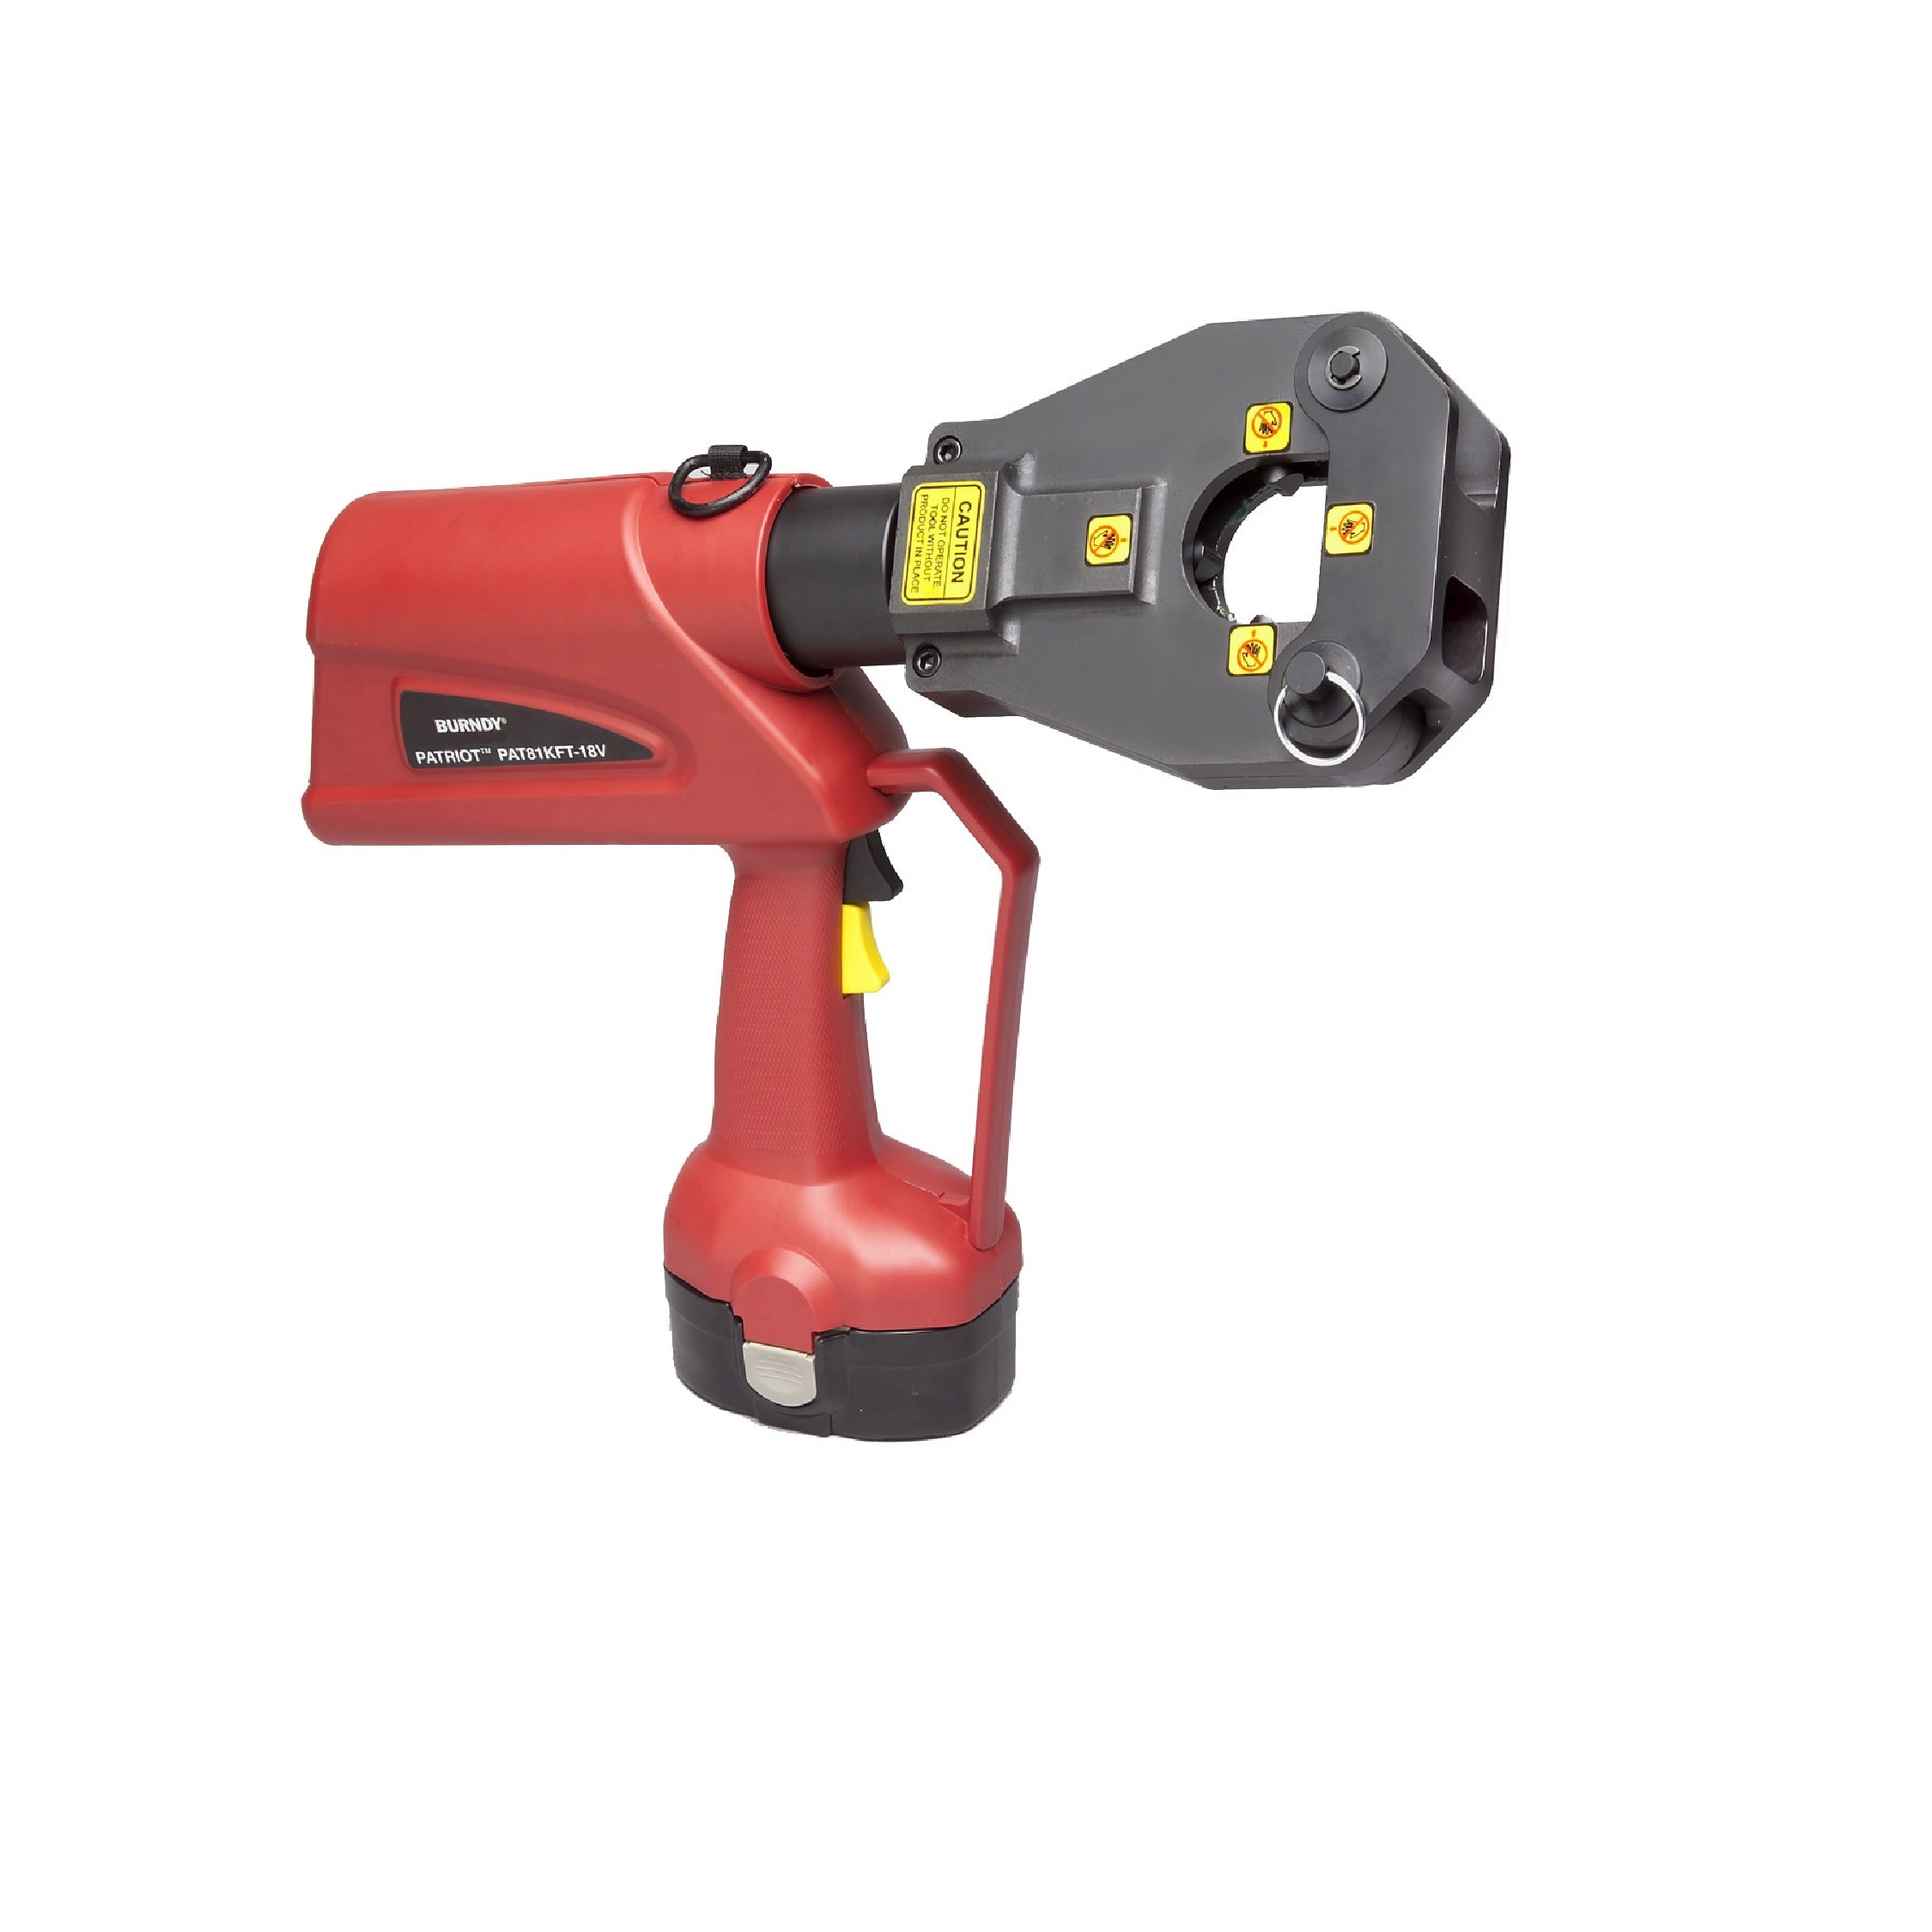 Burndy Battery Actuated Crimping Tool, Hydraulic Self Contained, 6 Ton, #8 - 1000 Kcmil Cu, #8 - 750 Kcmil Al, 18V Ni-MH